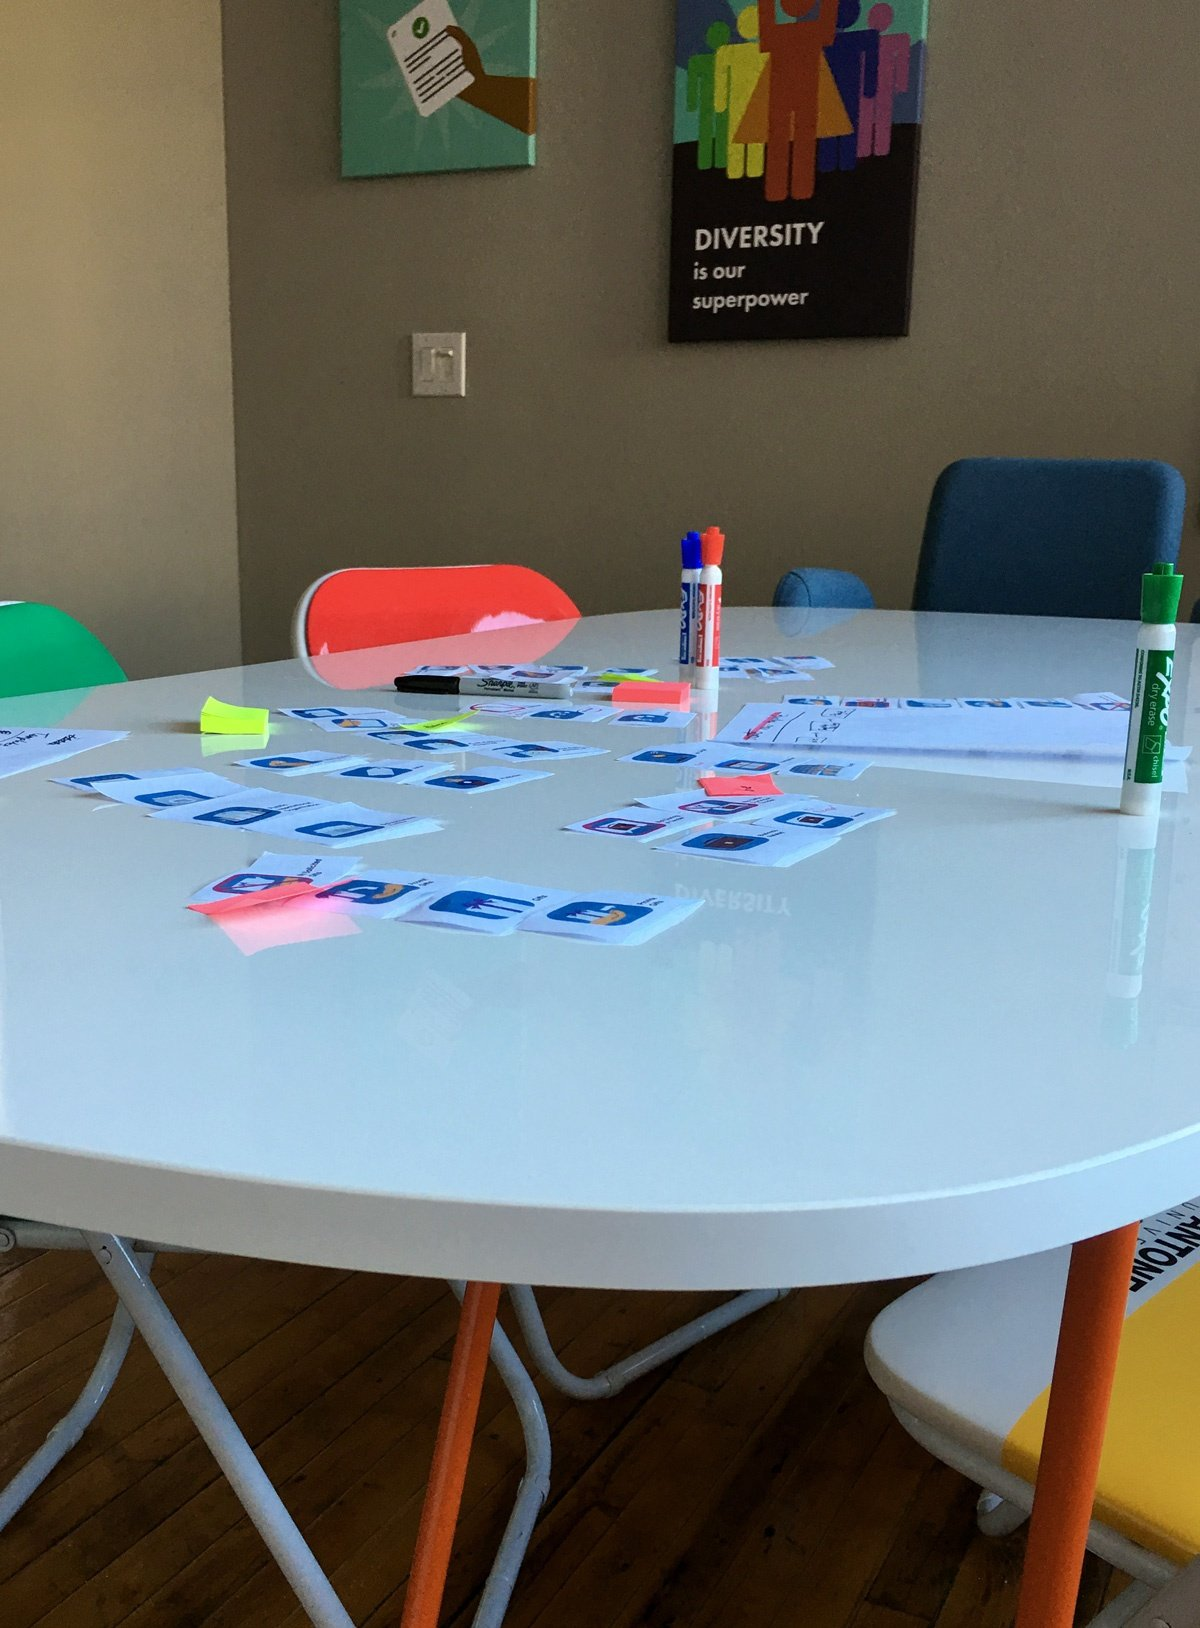 A table at Broadcat, with markers, Pantone chairs, and proprietary strips of paper.